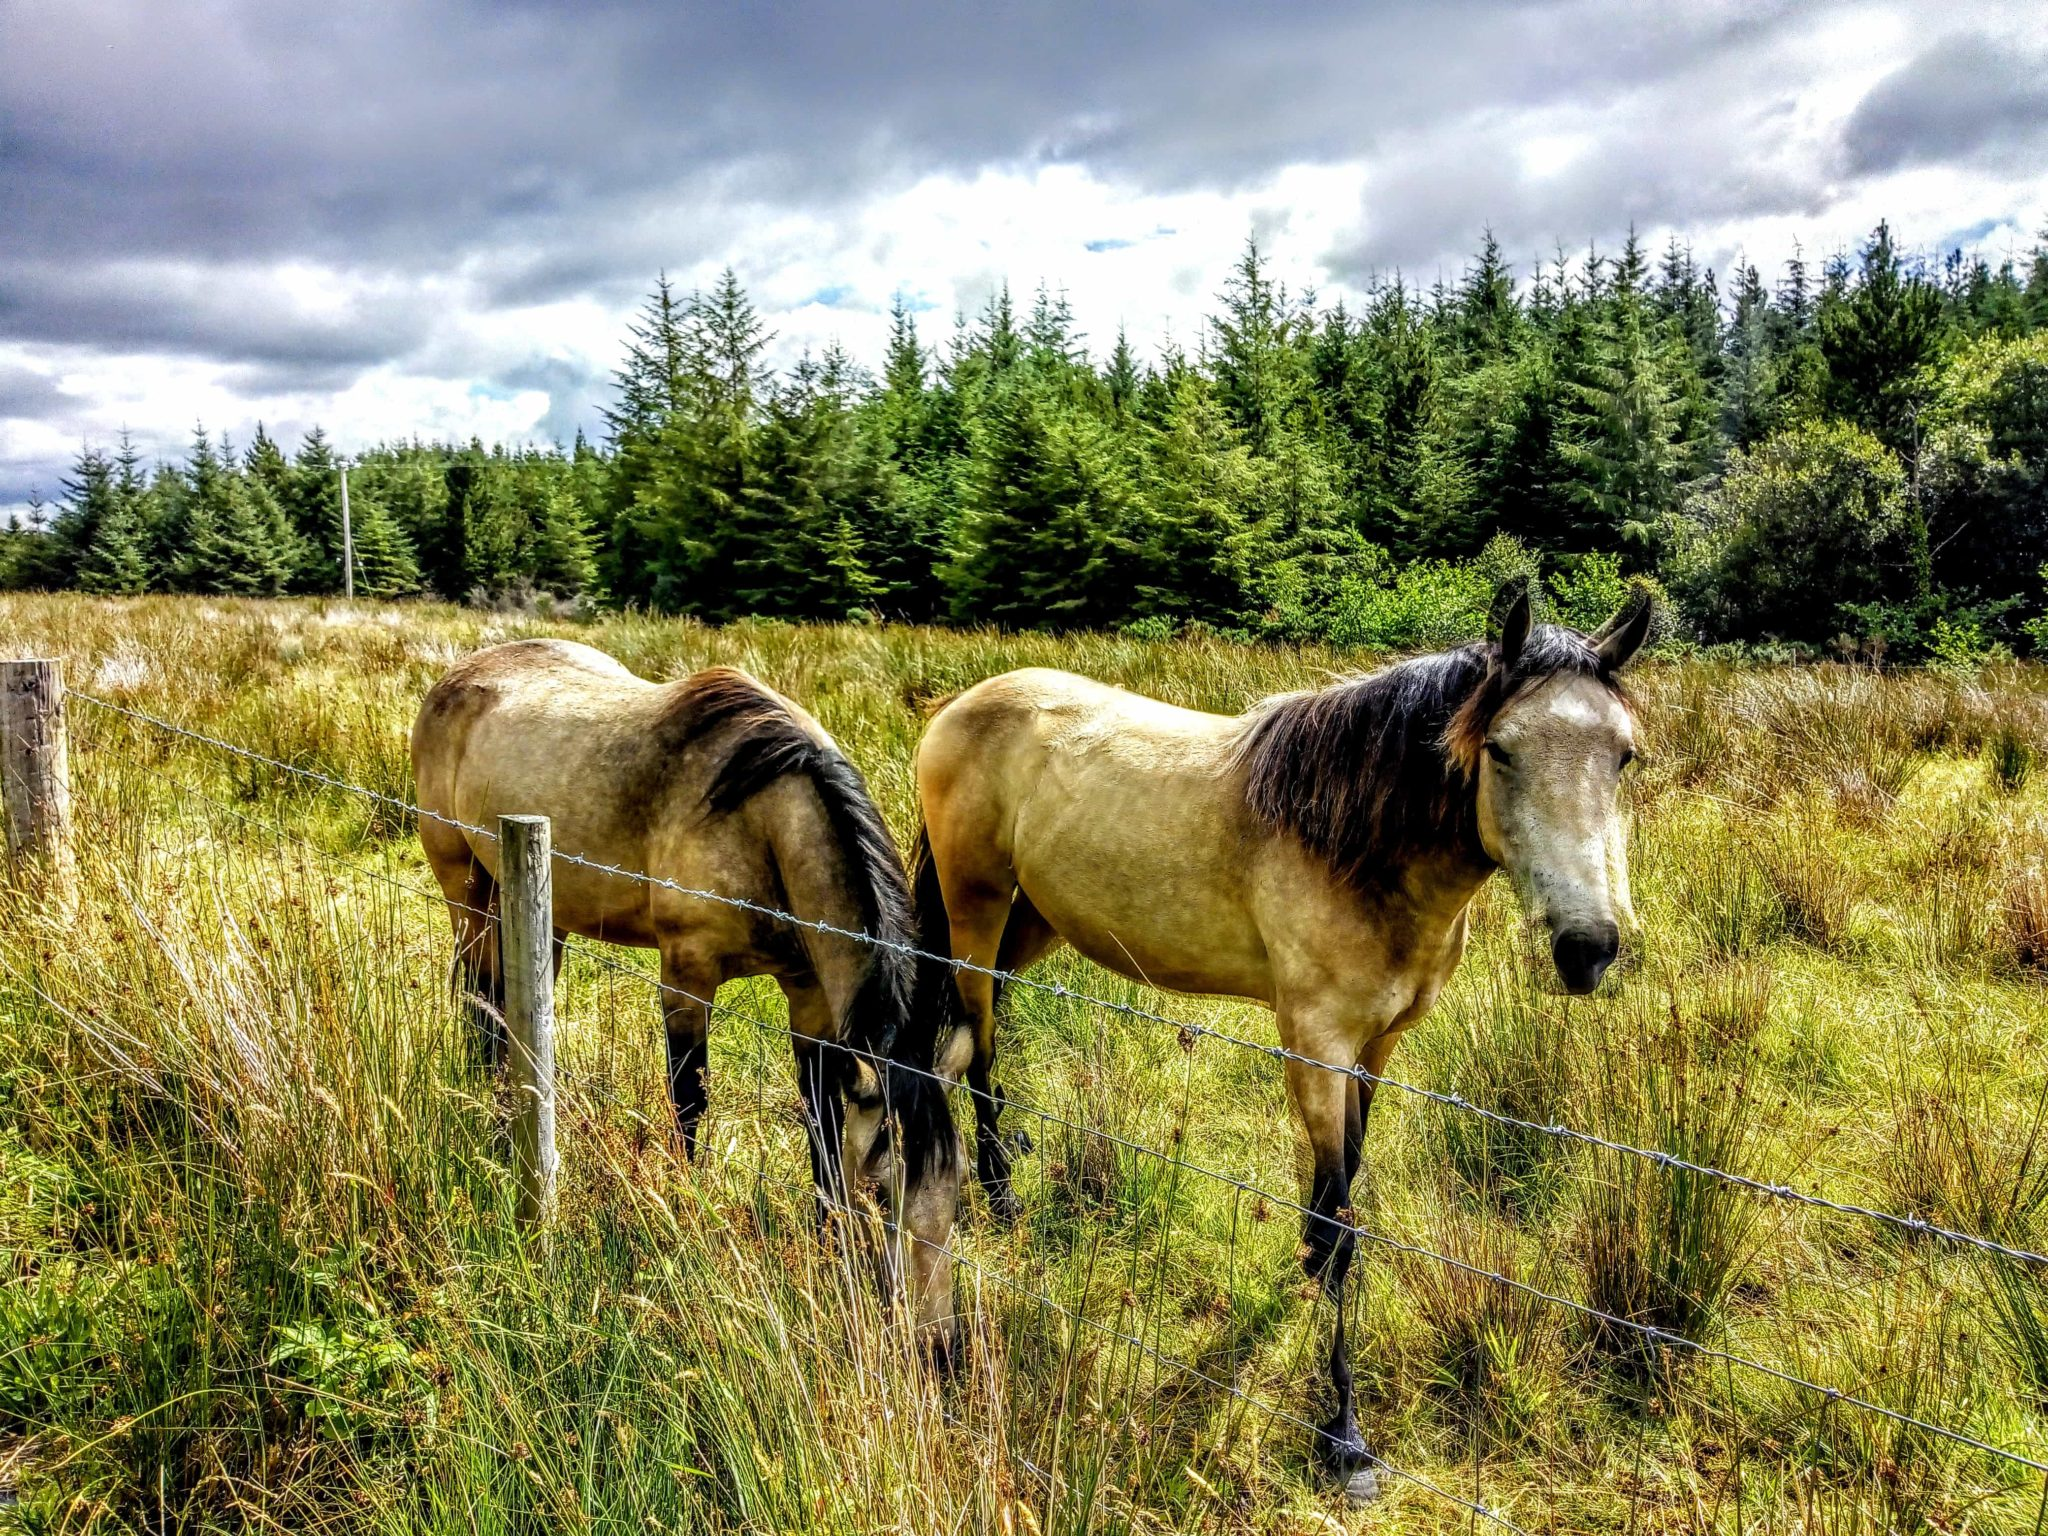 Irish ponies in the field